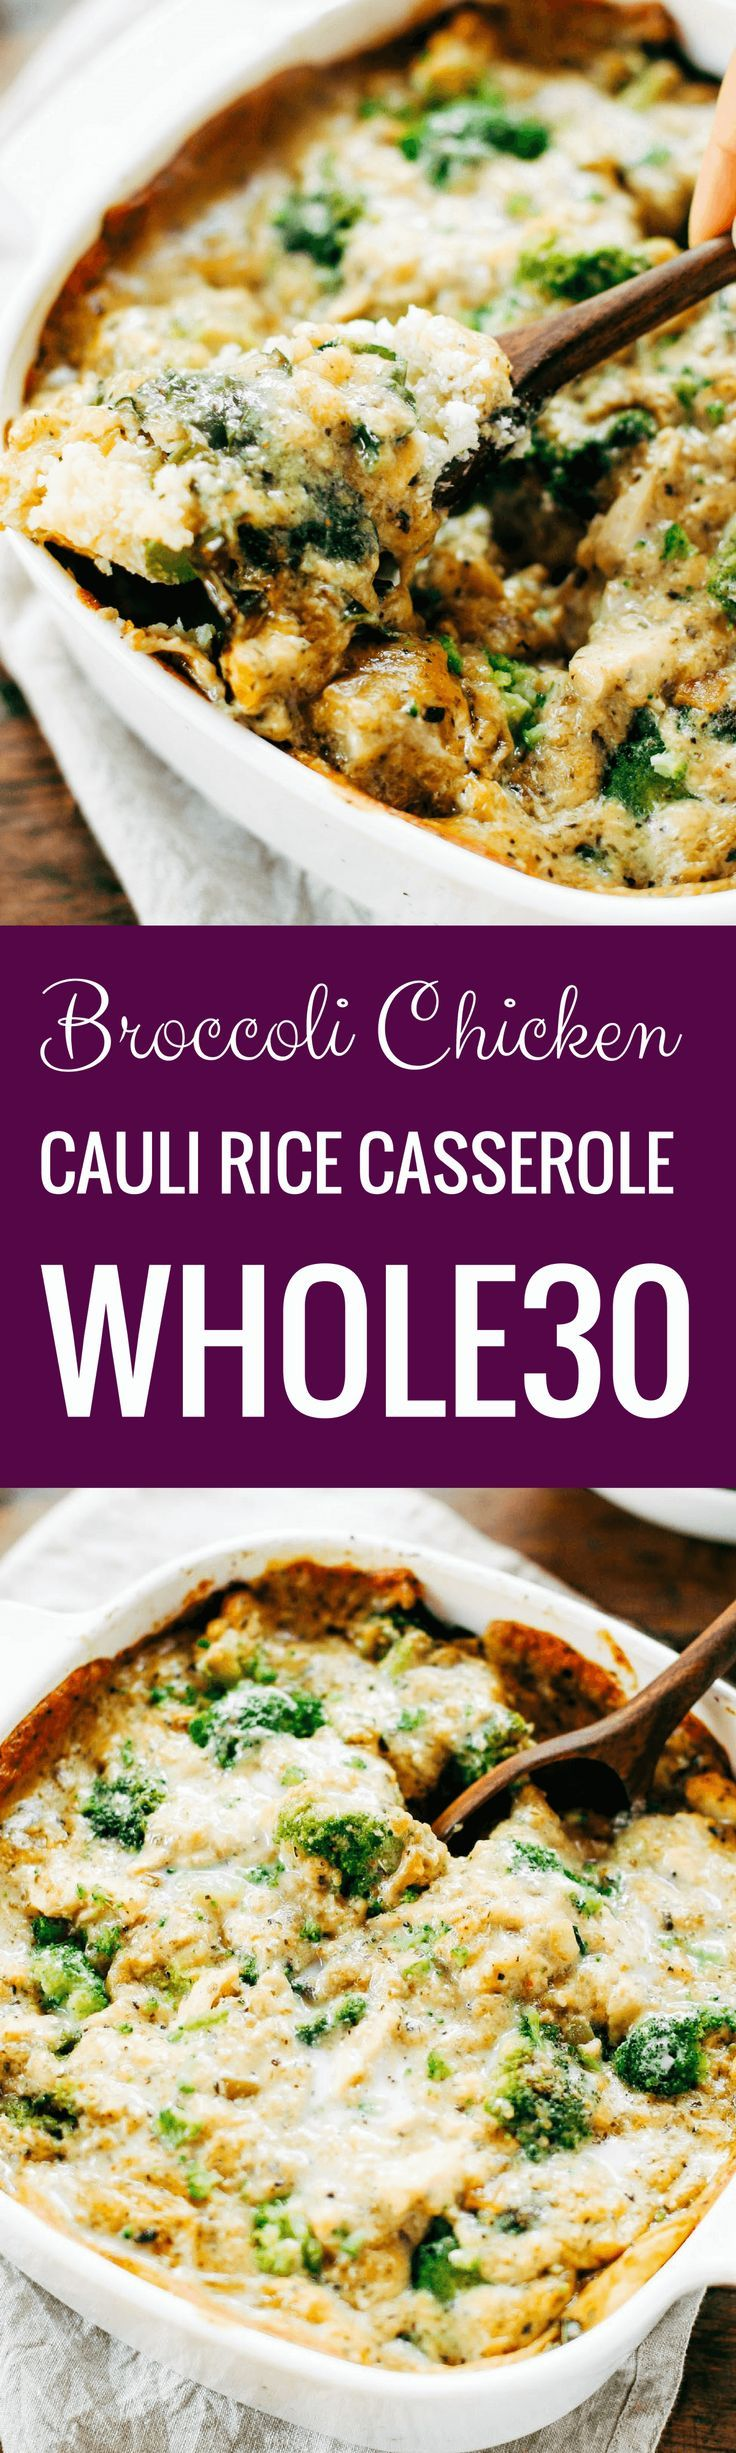 Creamy whole30 chicken, broccoli, cauliflower rice casserole. Your family is going to love this warm and comforting casserole! Kid proof and stuffed with three veggies, topped with the best herb cream sauce. Extra creamy whole30 spaghetti squash casserole